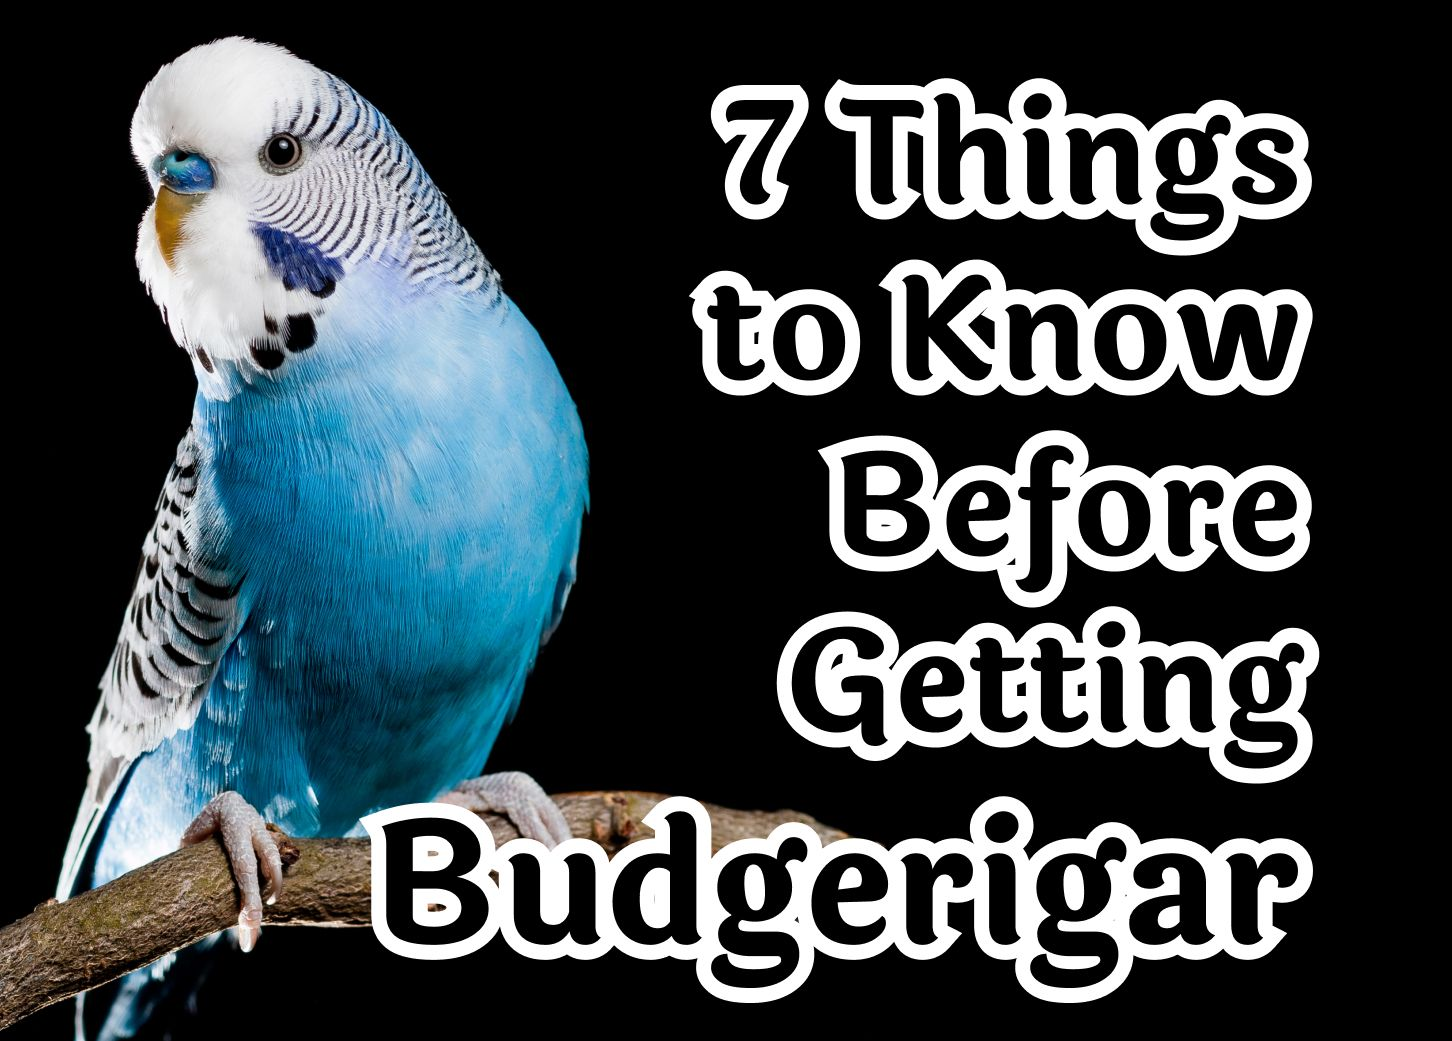 7 Things to Know Before Getting a Budgerigar